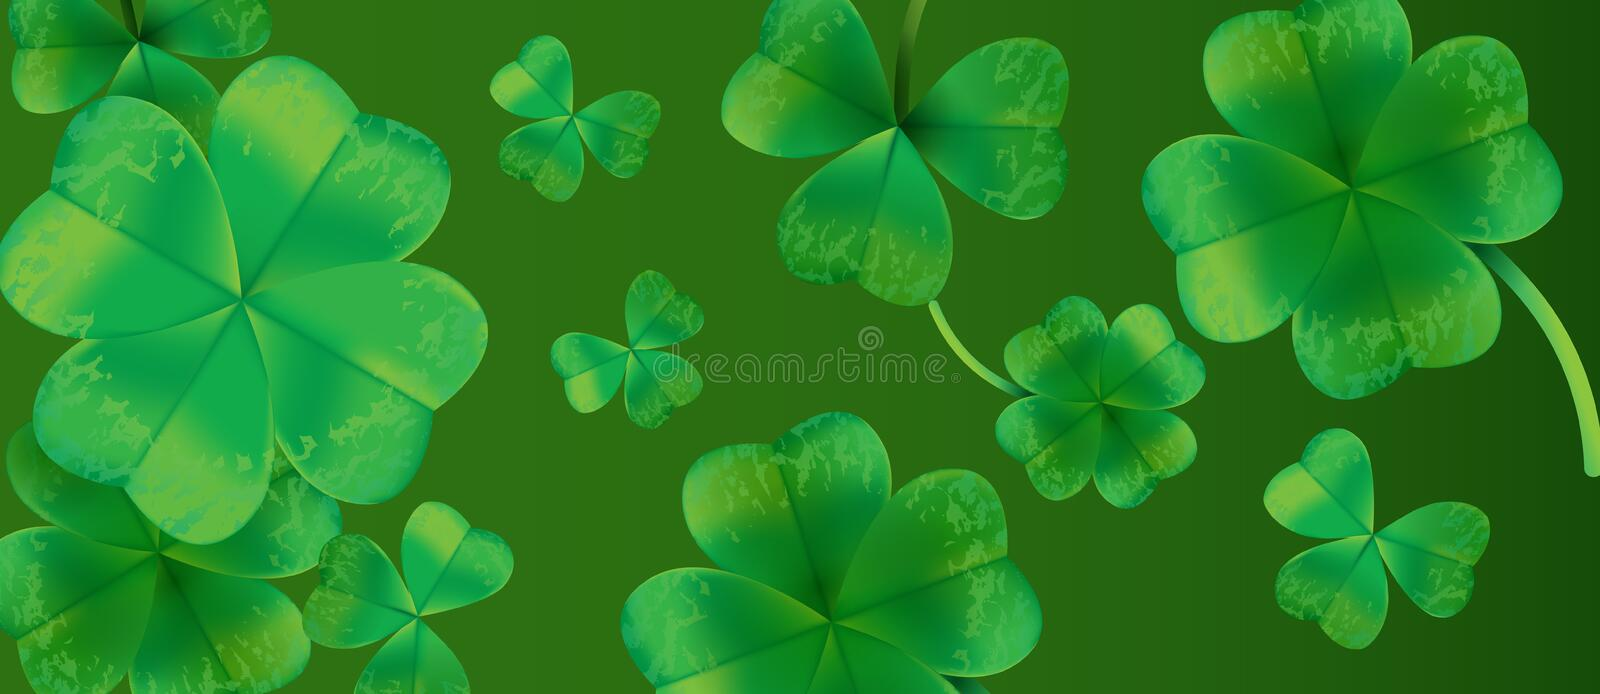 Saint Patricks Day Background Design with Green Falling Clovers Leaf. Irish Lucky Holiday Vector Illustration for Greeting Card, P royalty free illustration